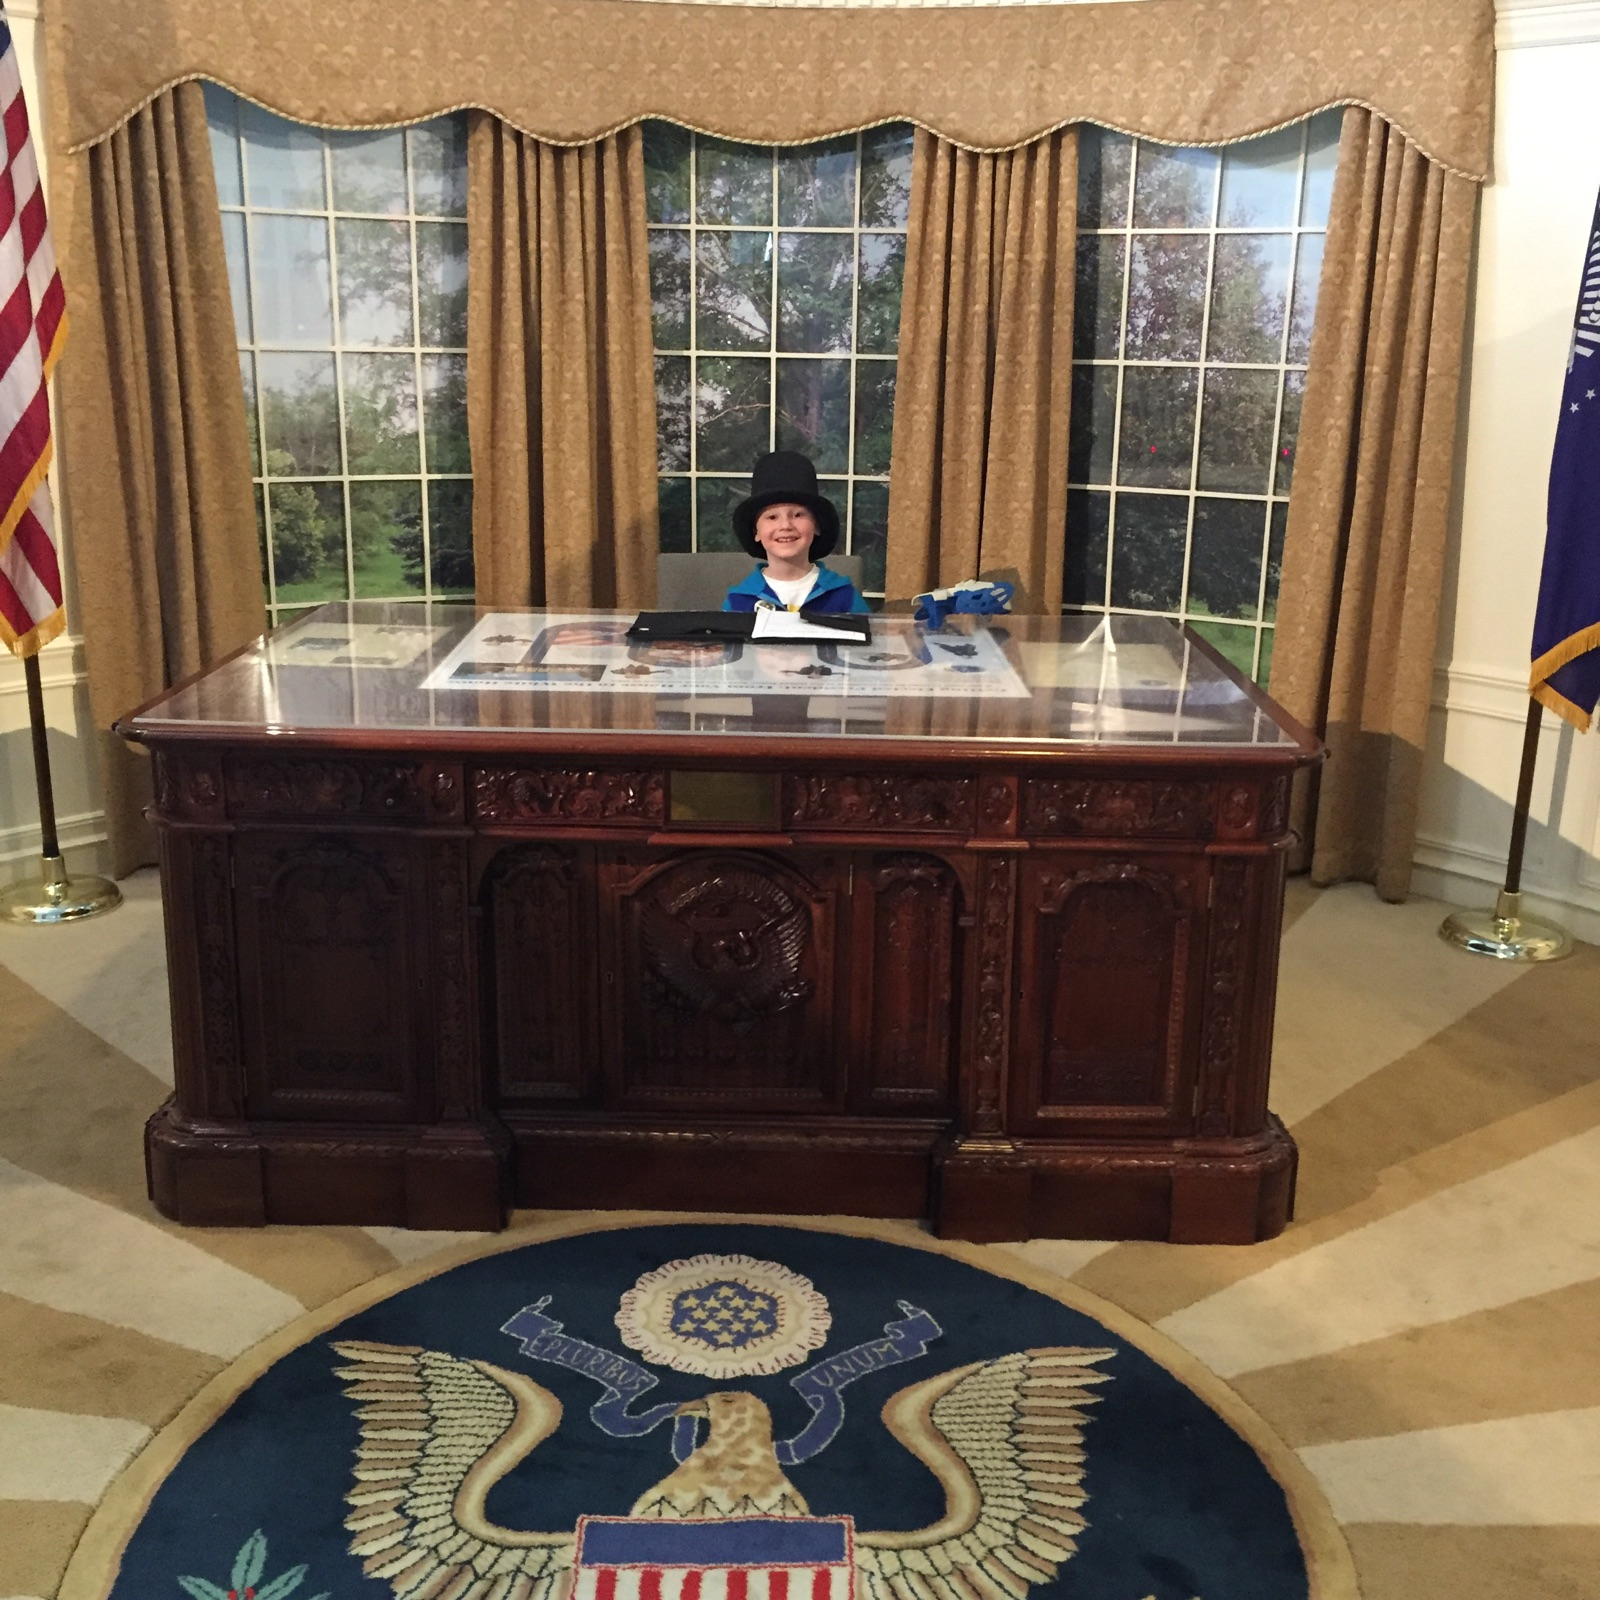 Playing President in the Oval Office